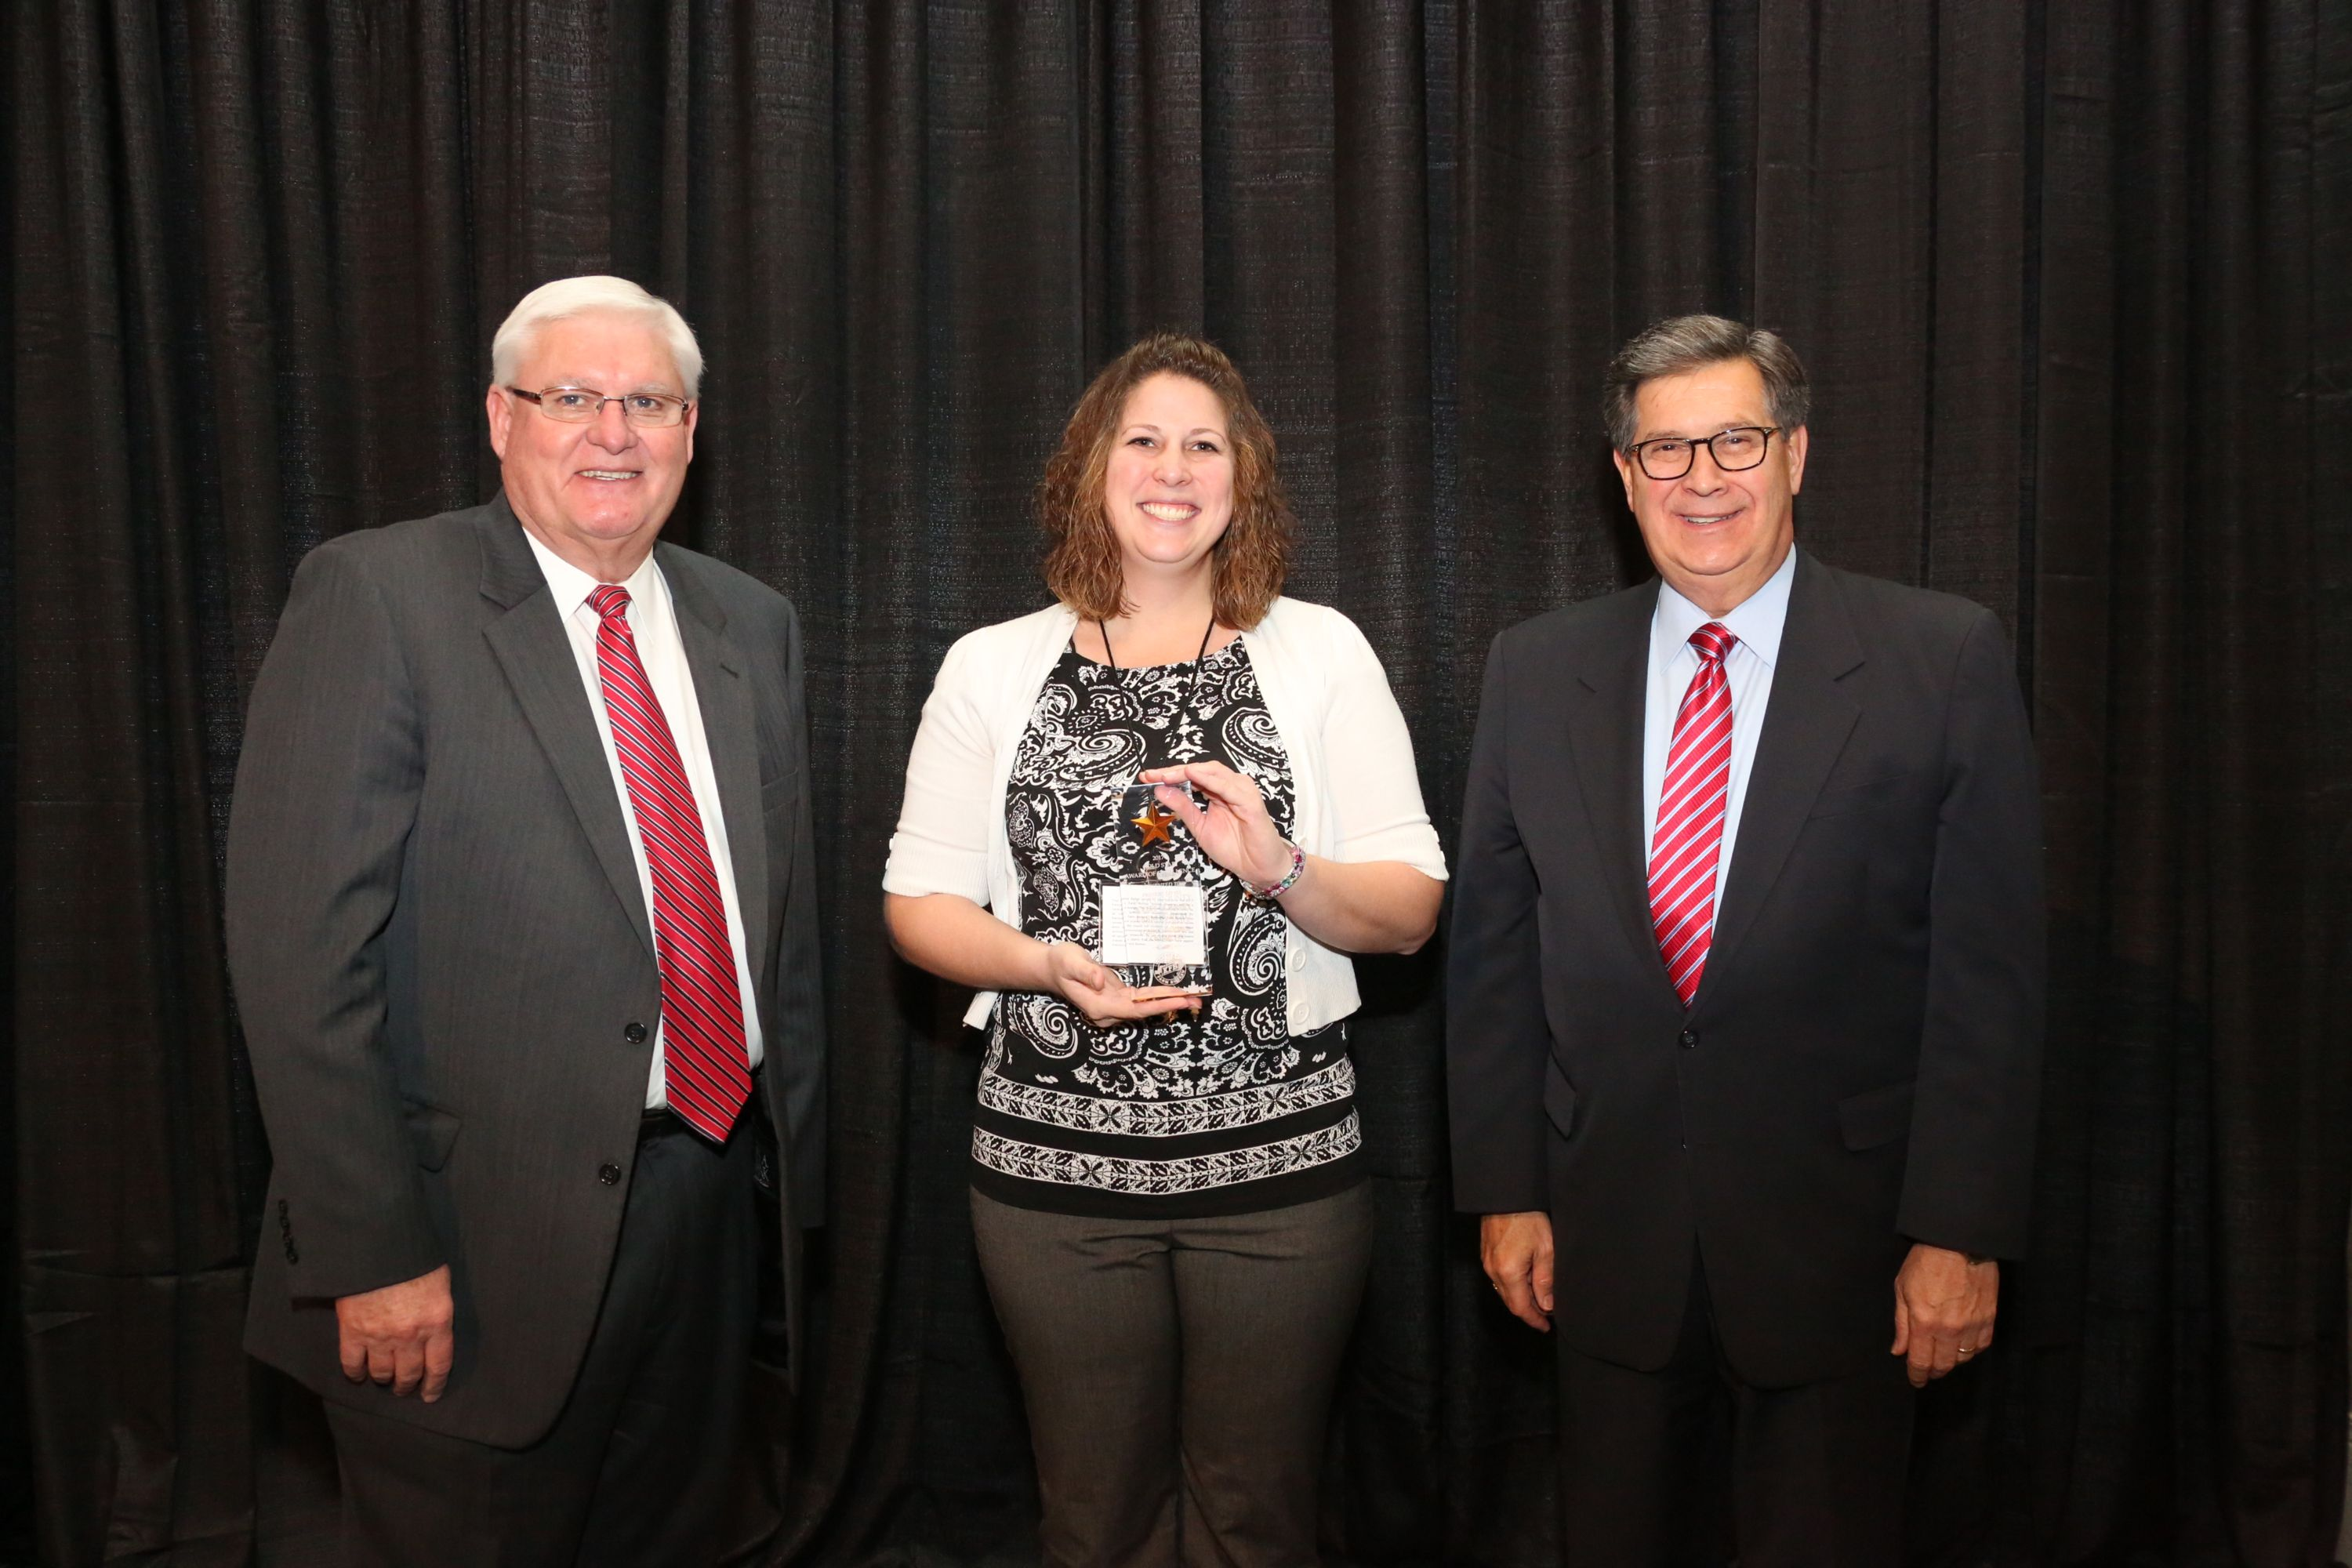 Michelle Simon of Scott County accepts the Gold Star Award of Excellence from Mark Haney, Kentucky Farm Bureau President, and David S. Beck, Kentucky Farm Bureau Executive Vice President.